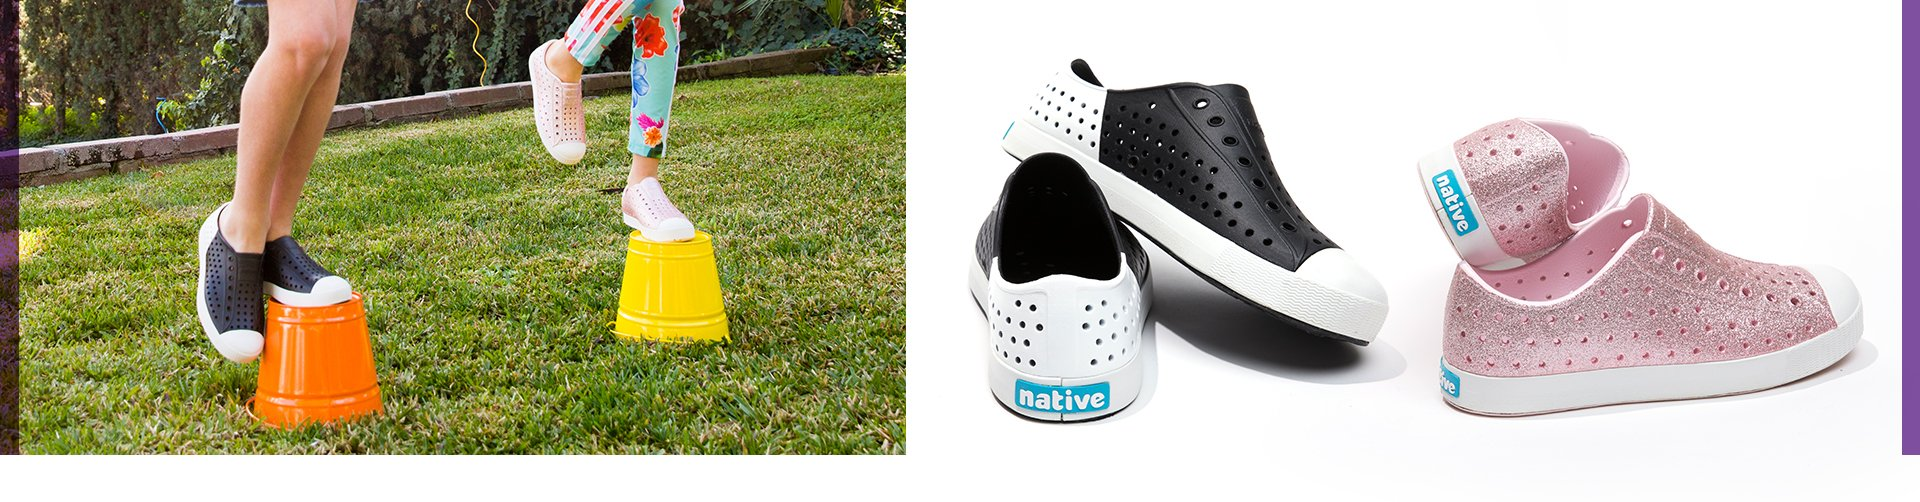 Shop Native Kids Shoes